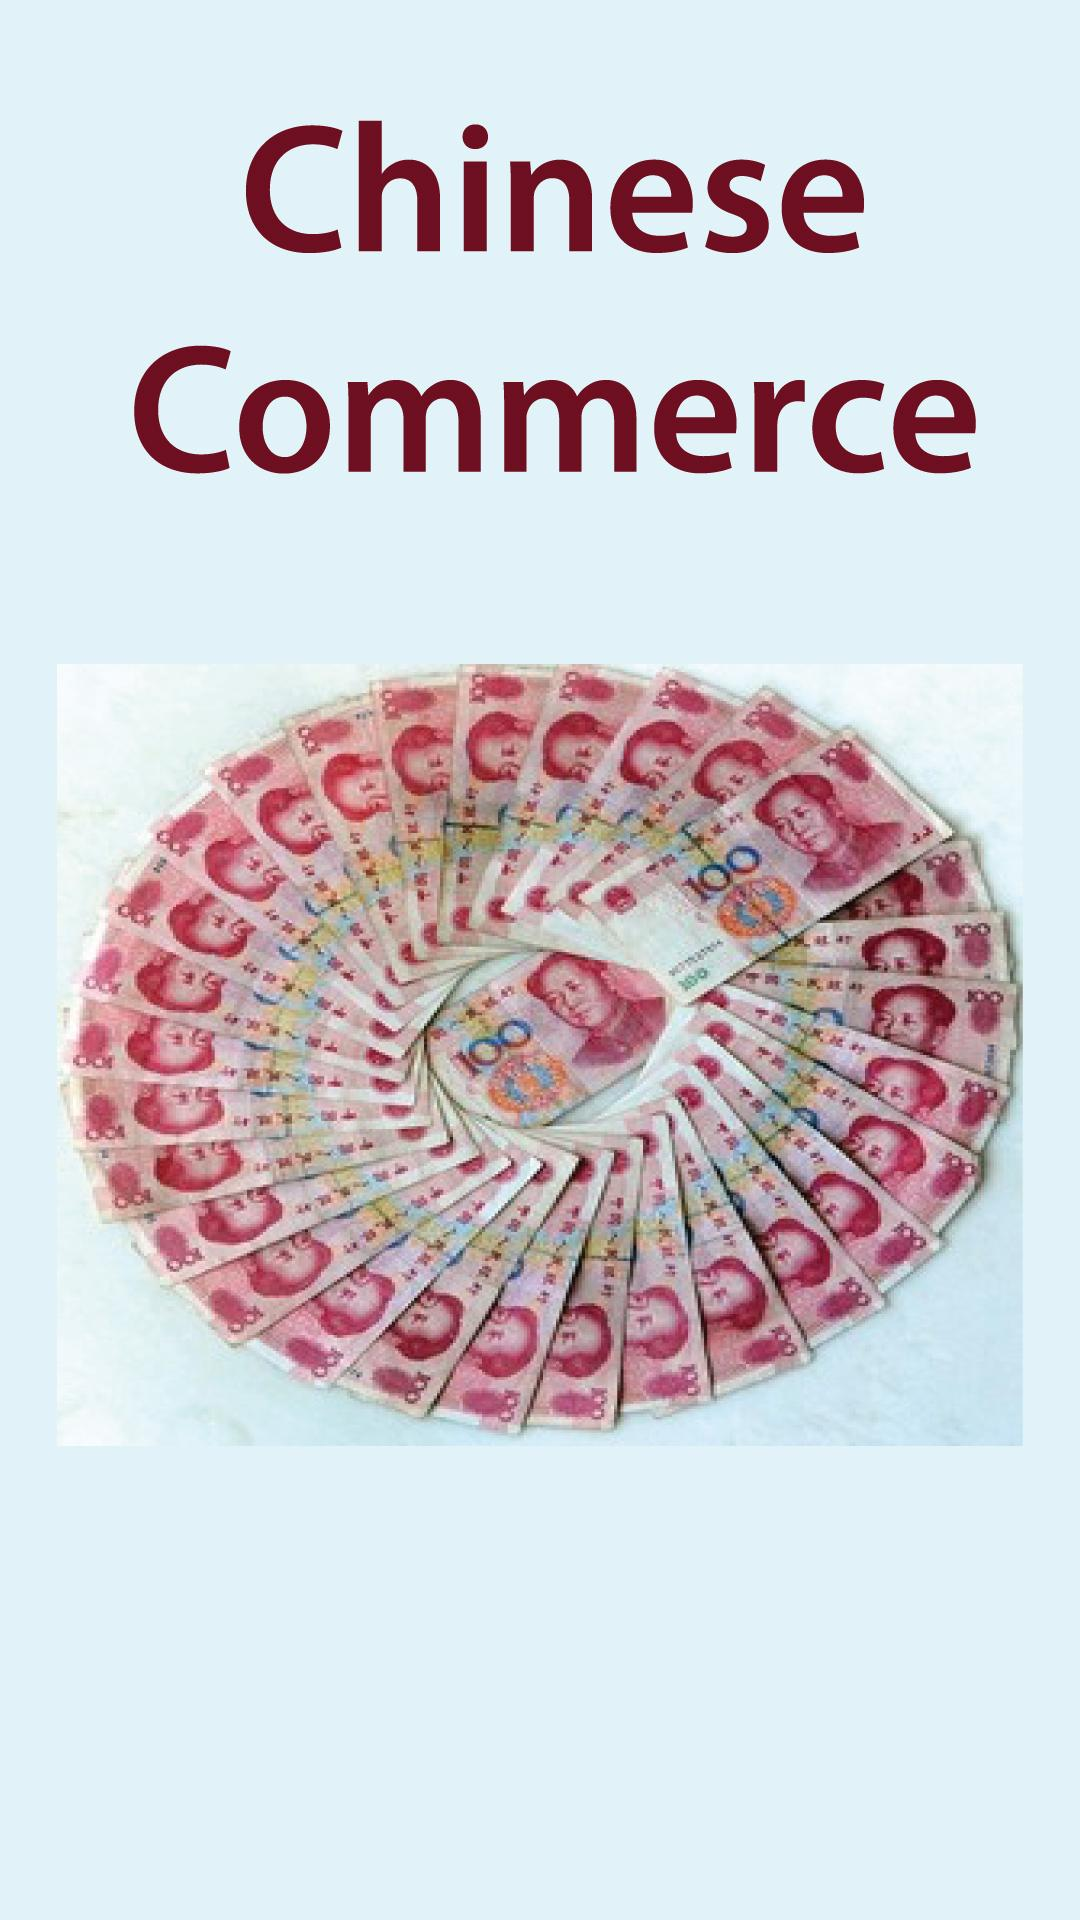 Chinese Commerce